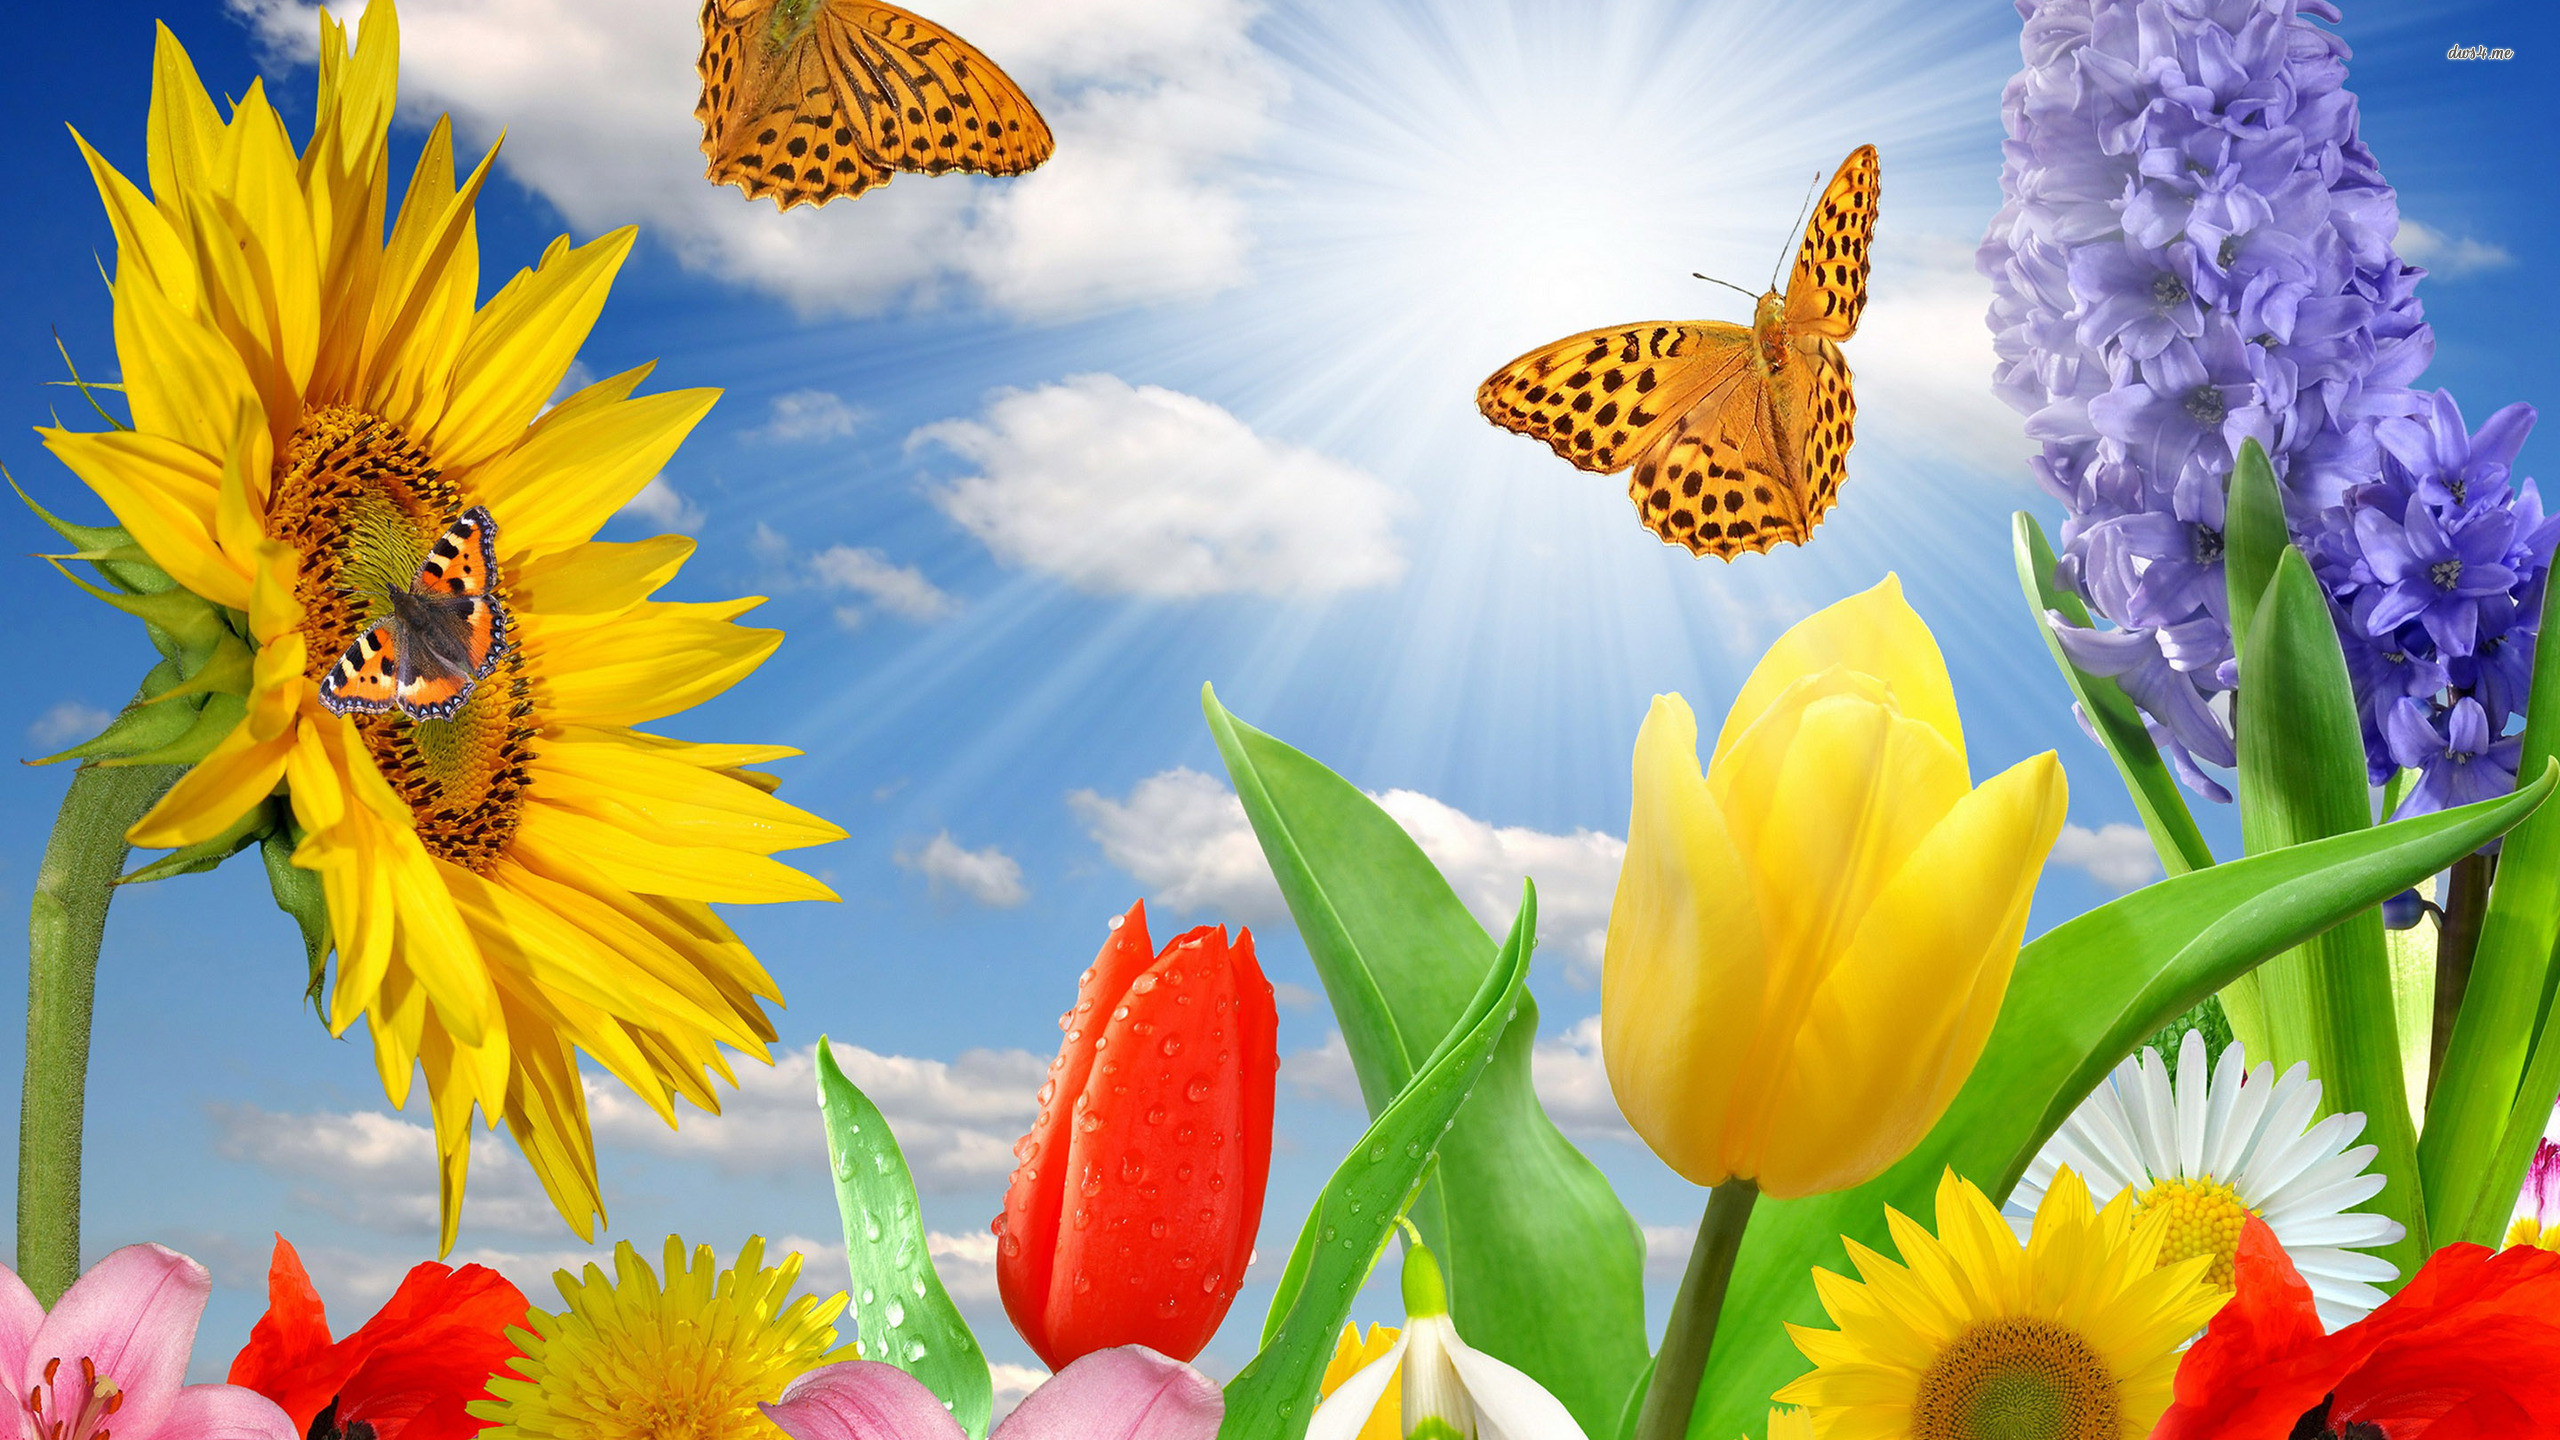 … Daisy and Butterfly wallpaper | wallpaper free download